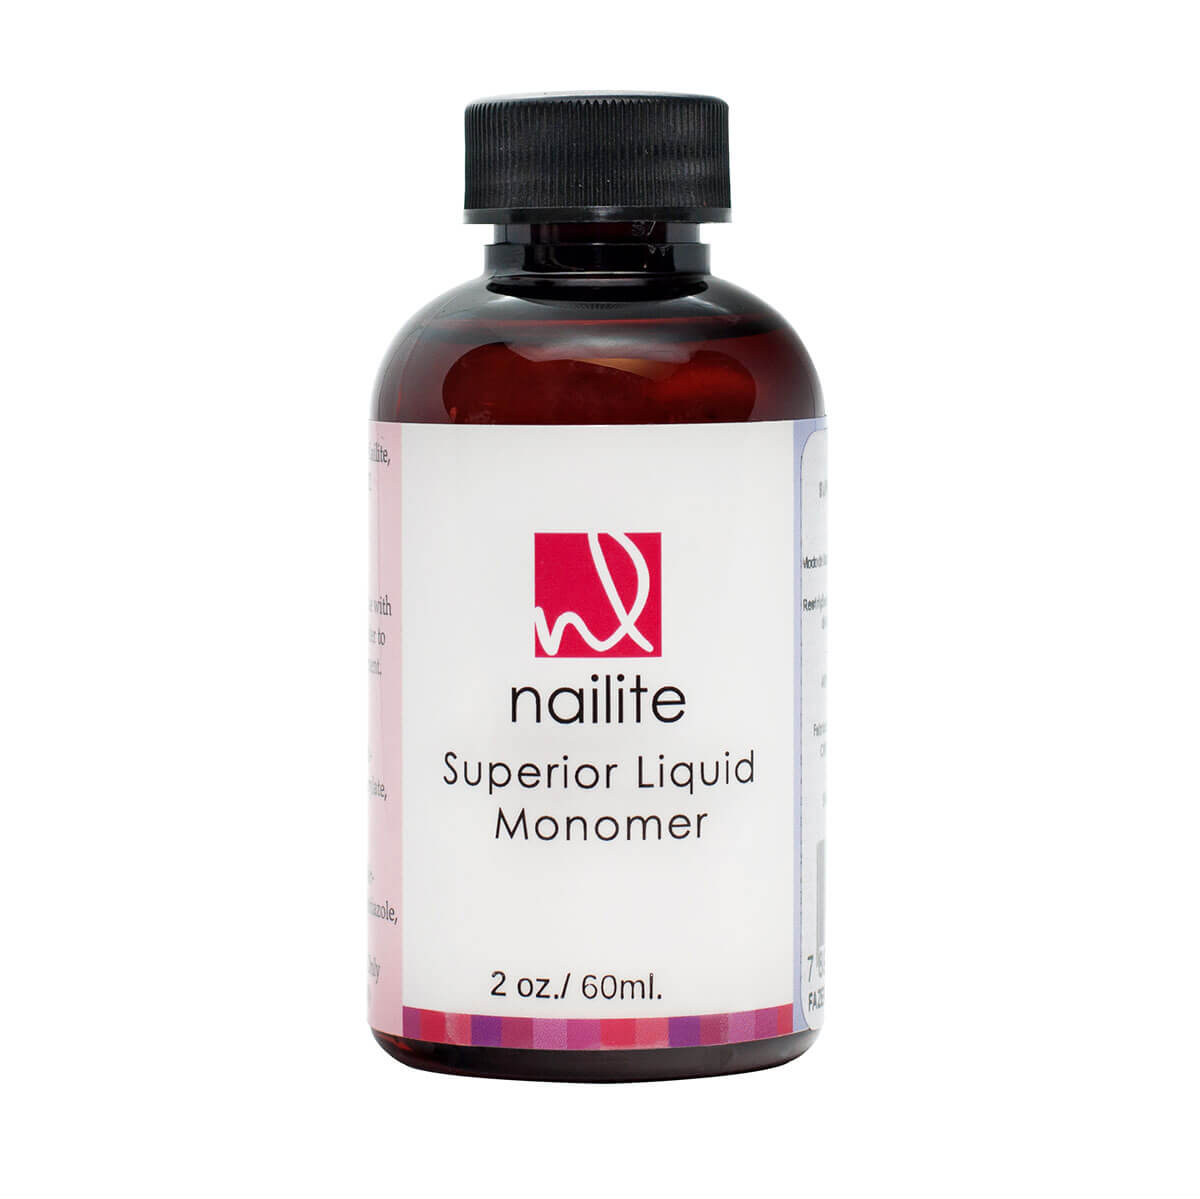 Superior Liquid Monomer Nailite 60ml